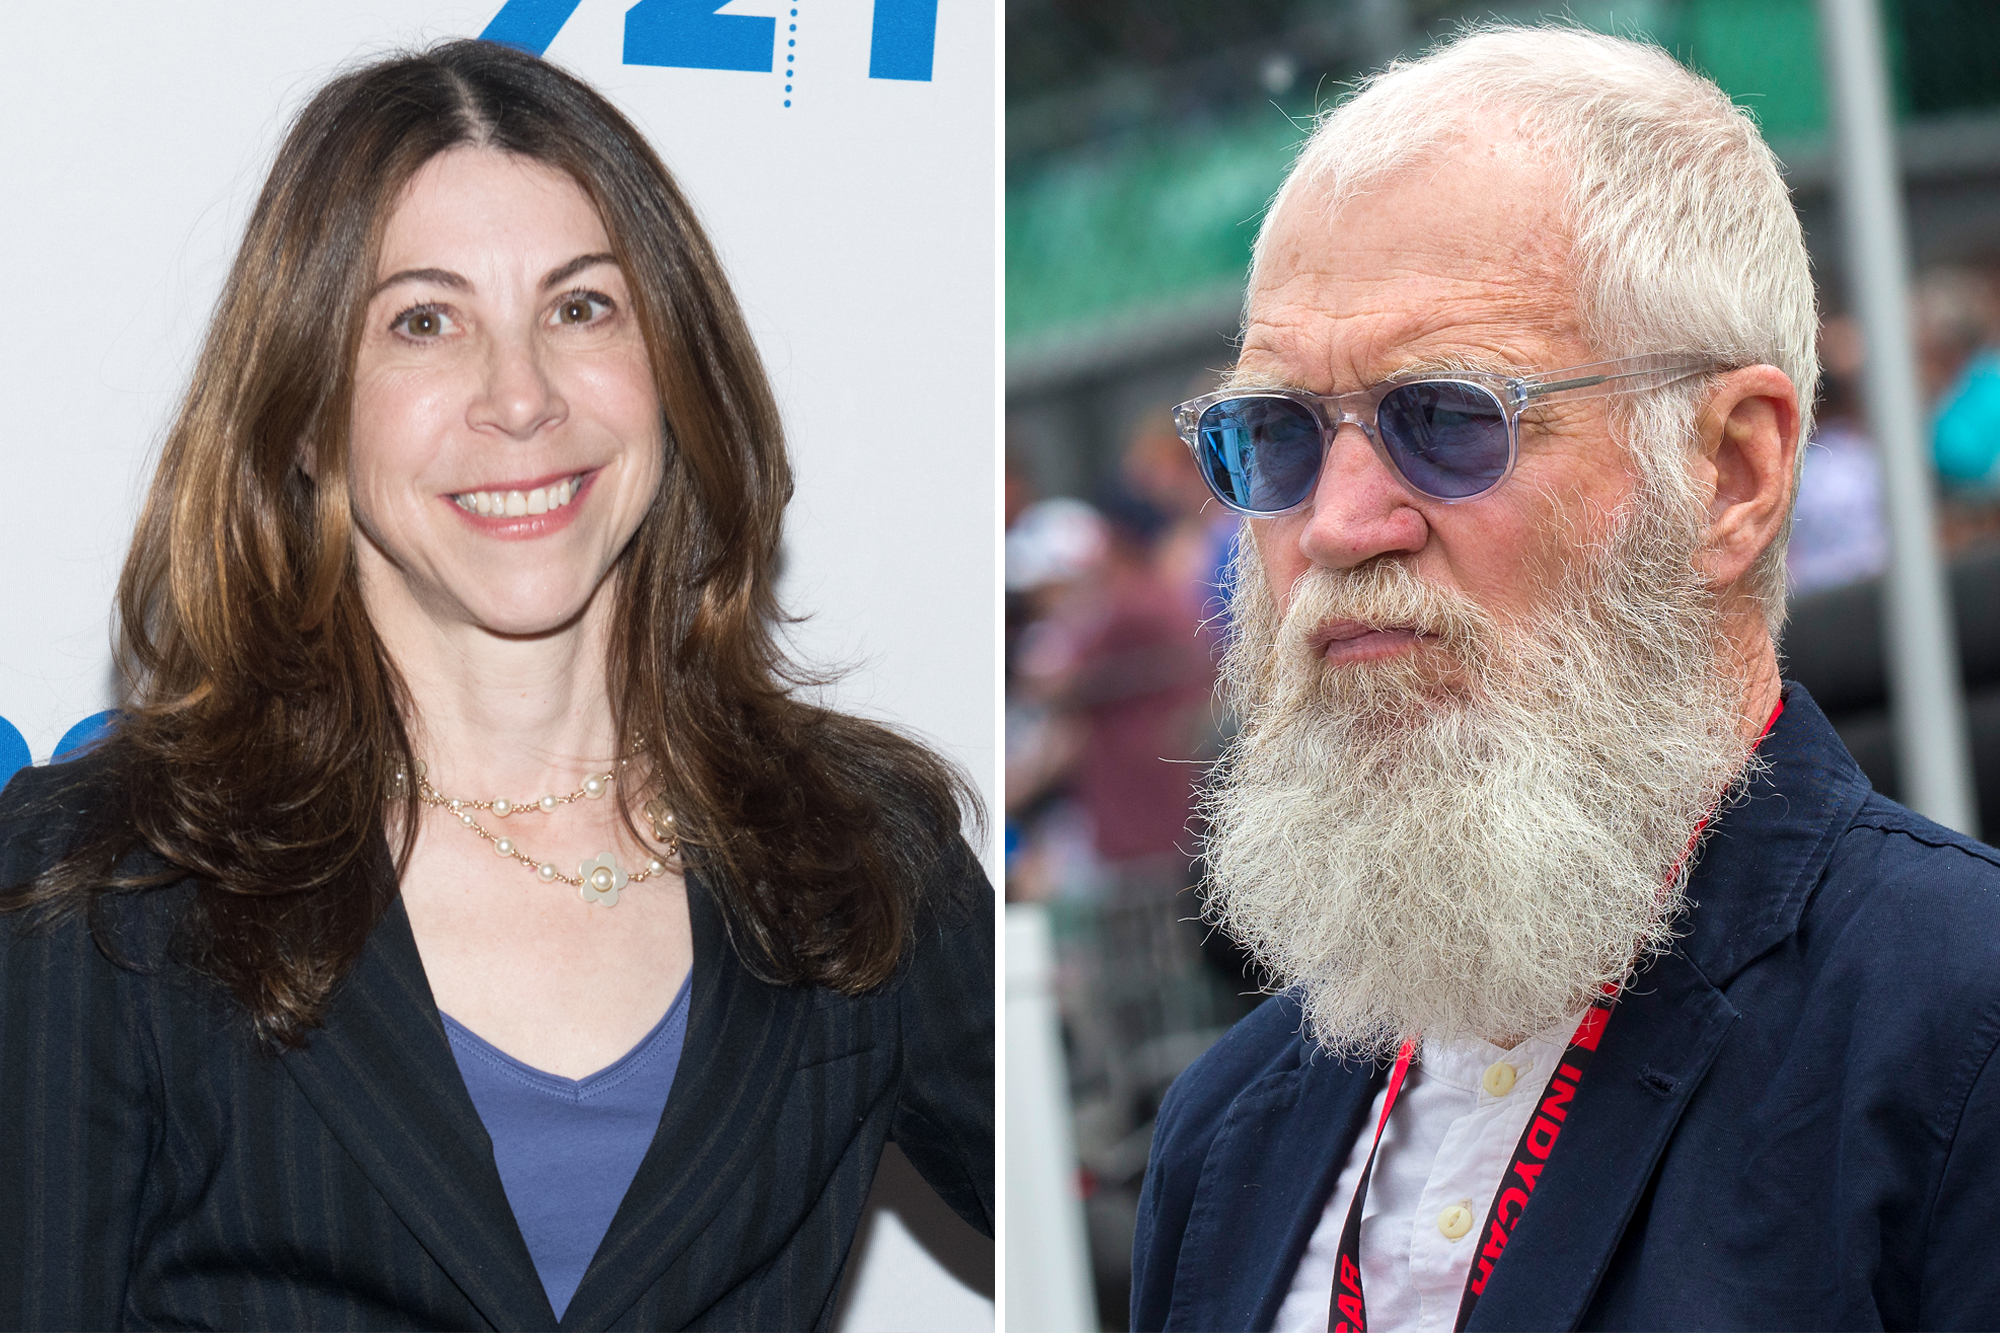 David Letterman apologizes to Nell Scovell for 'sexual favoritism'